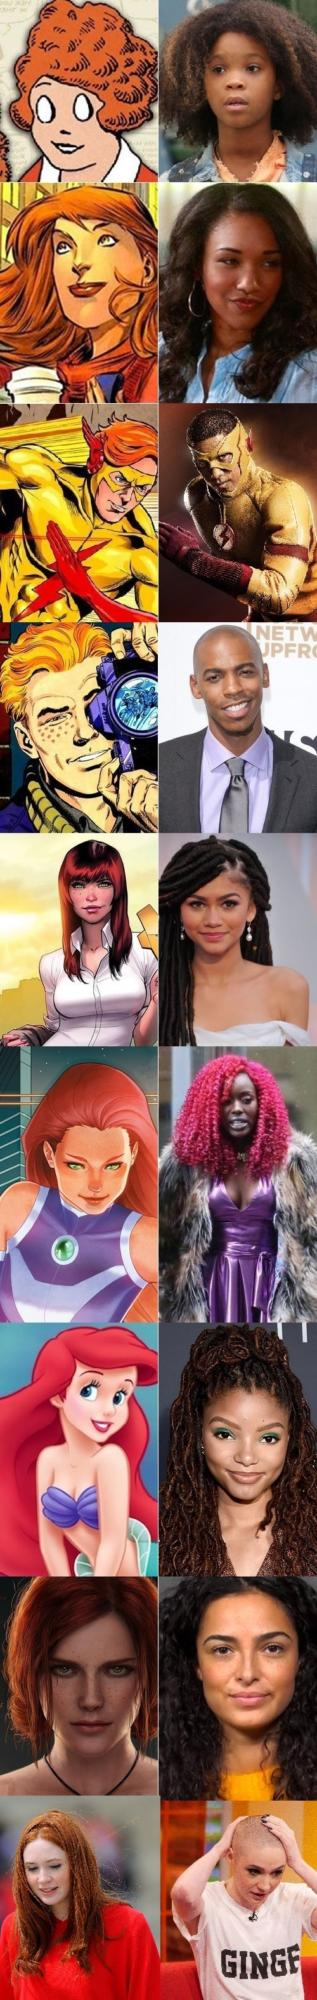 Seriously, why TF does Hollywood hate Gingers so much?